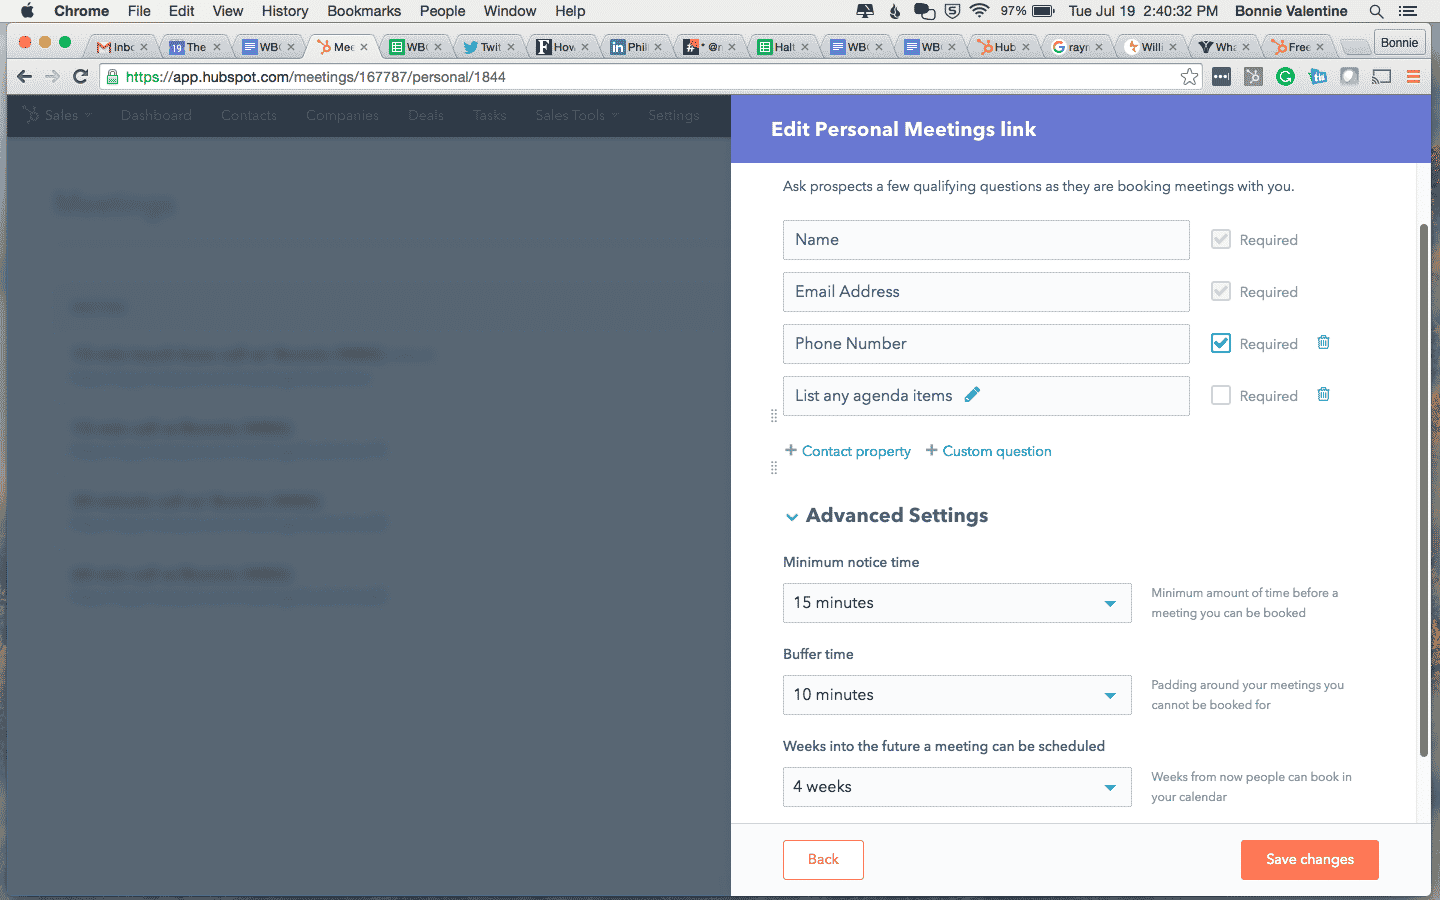 Screenshot of HubSpot meeting tool showing additional required fields in setup